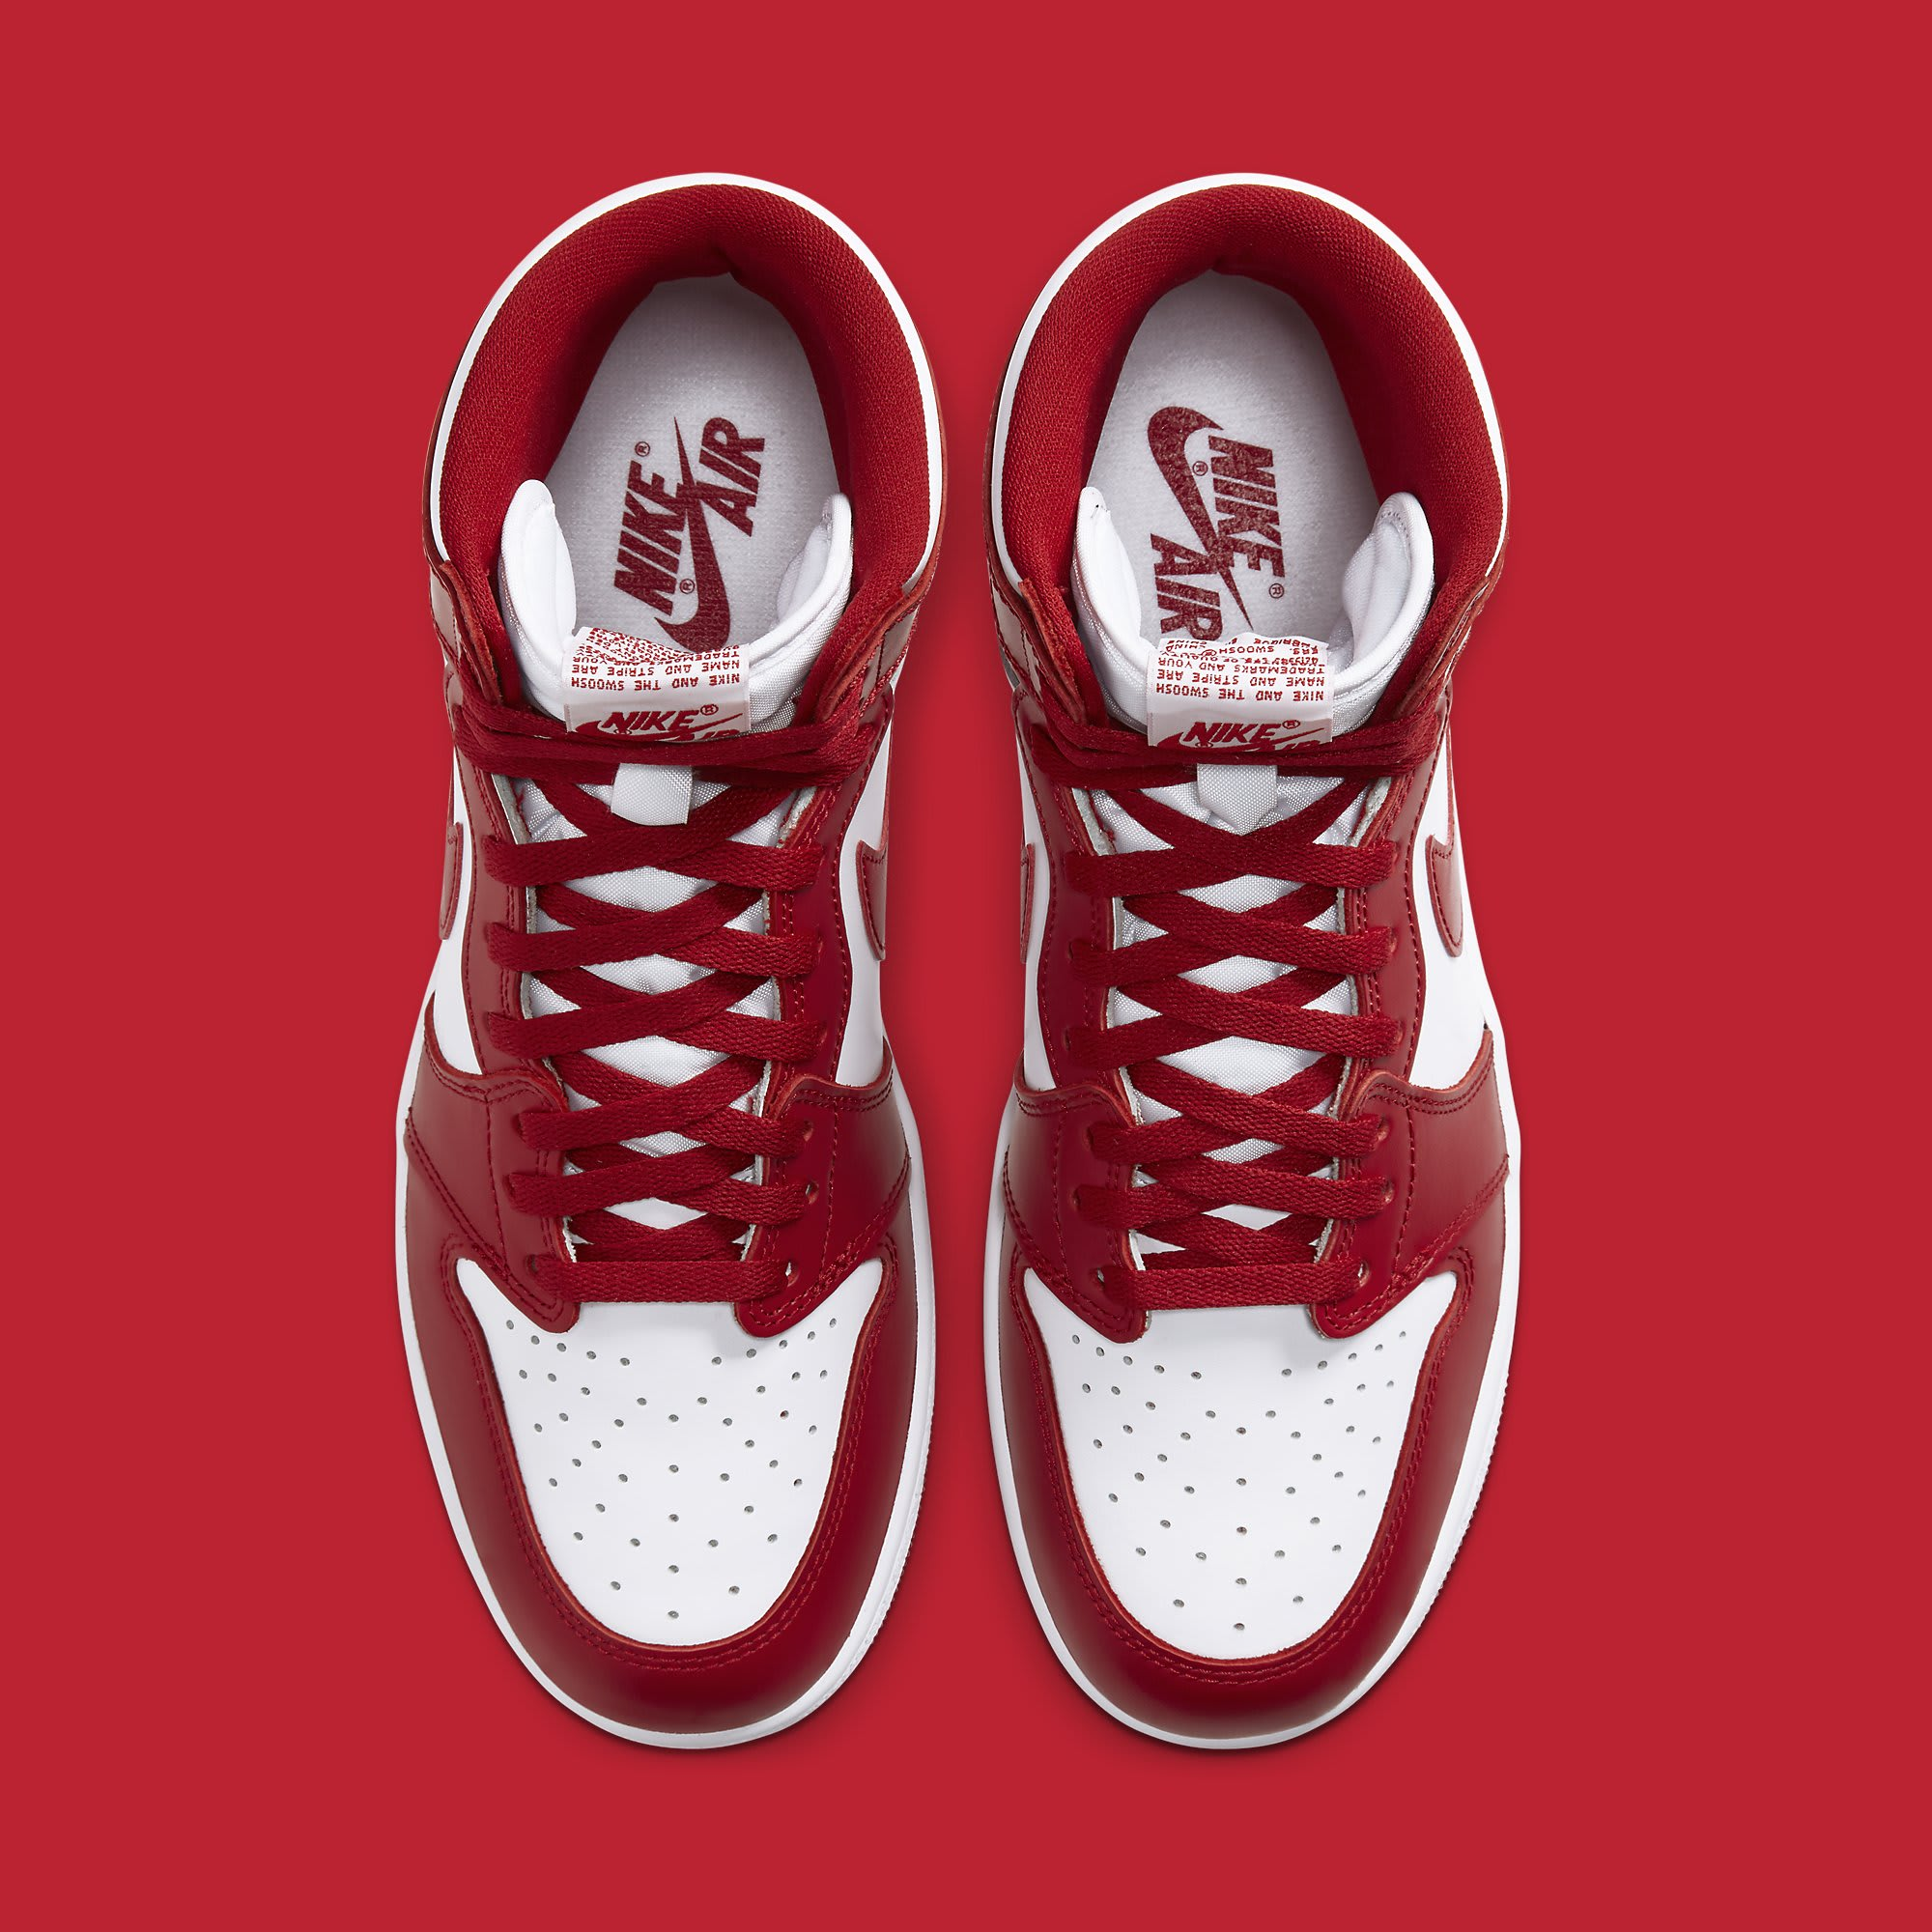 Air Jordan New Beginnings Pack Release Date CT6252-900 Air Jordan 1 Top